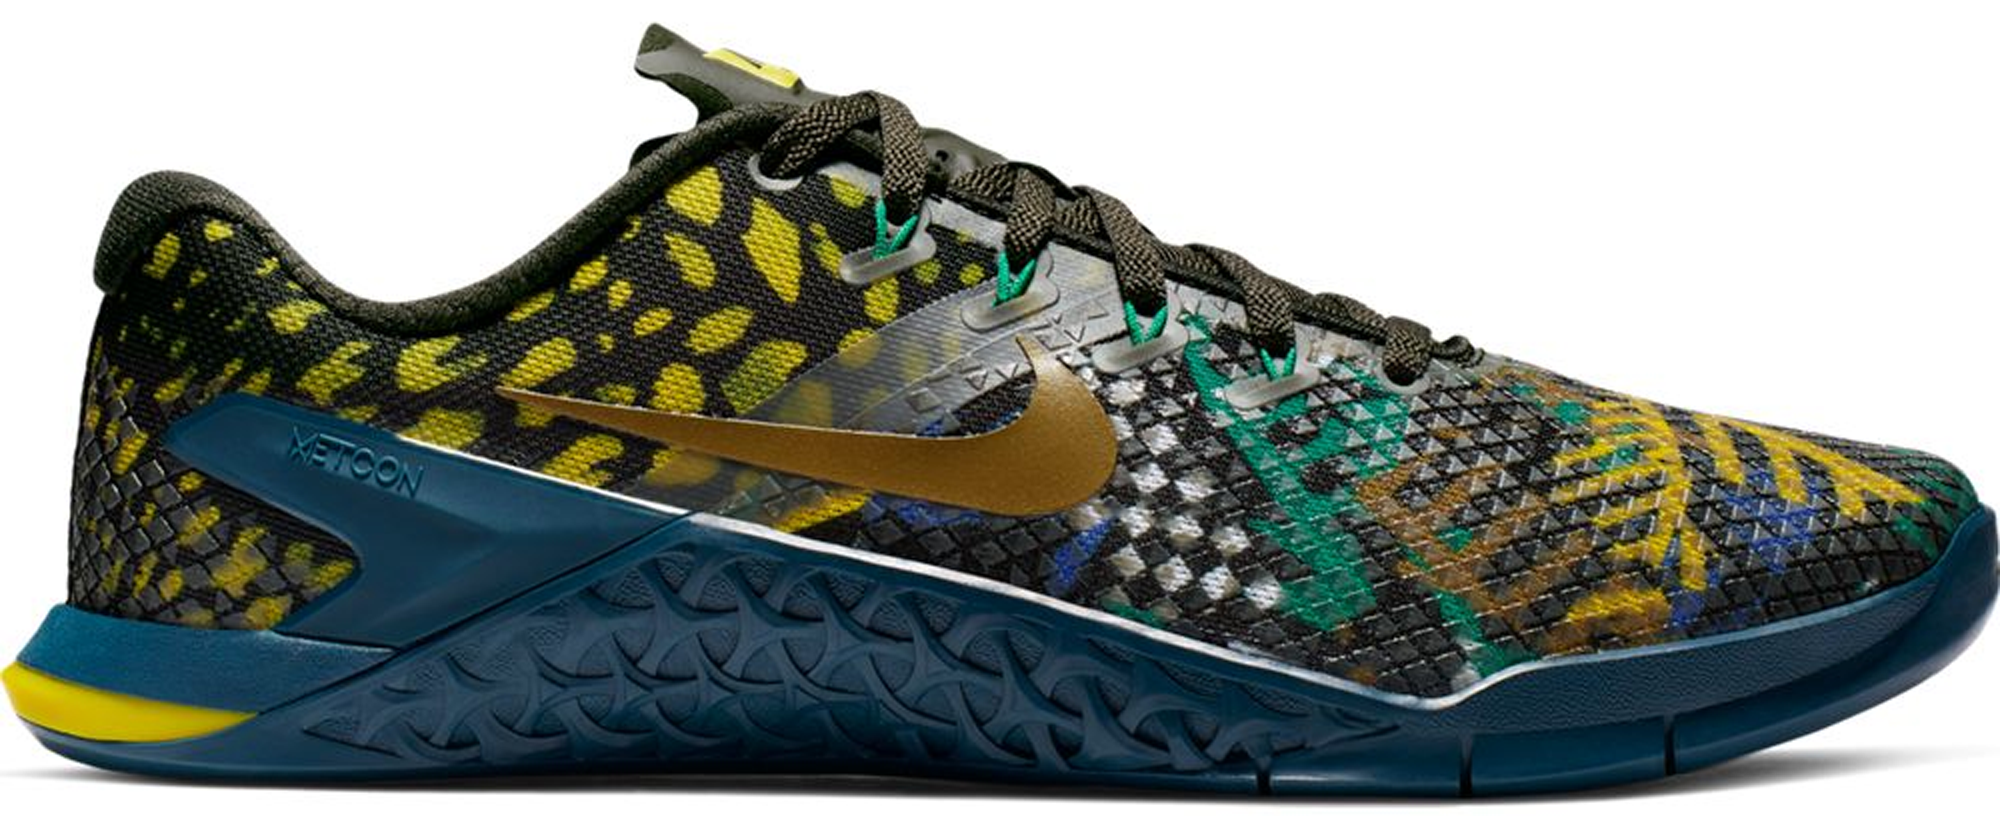 Pre-Owned Nike Metcon 4 Xd Multi-color